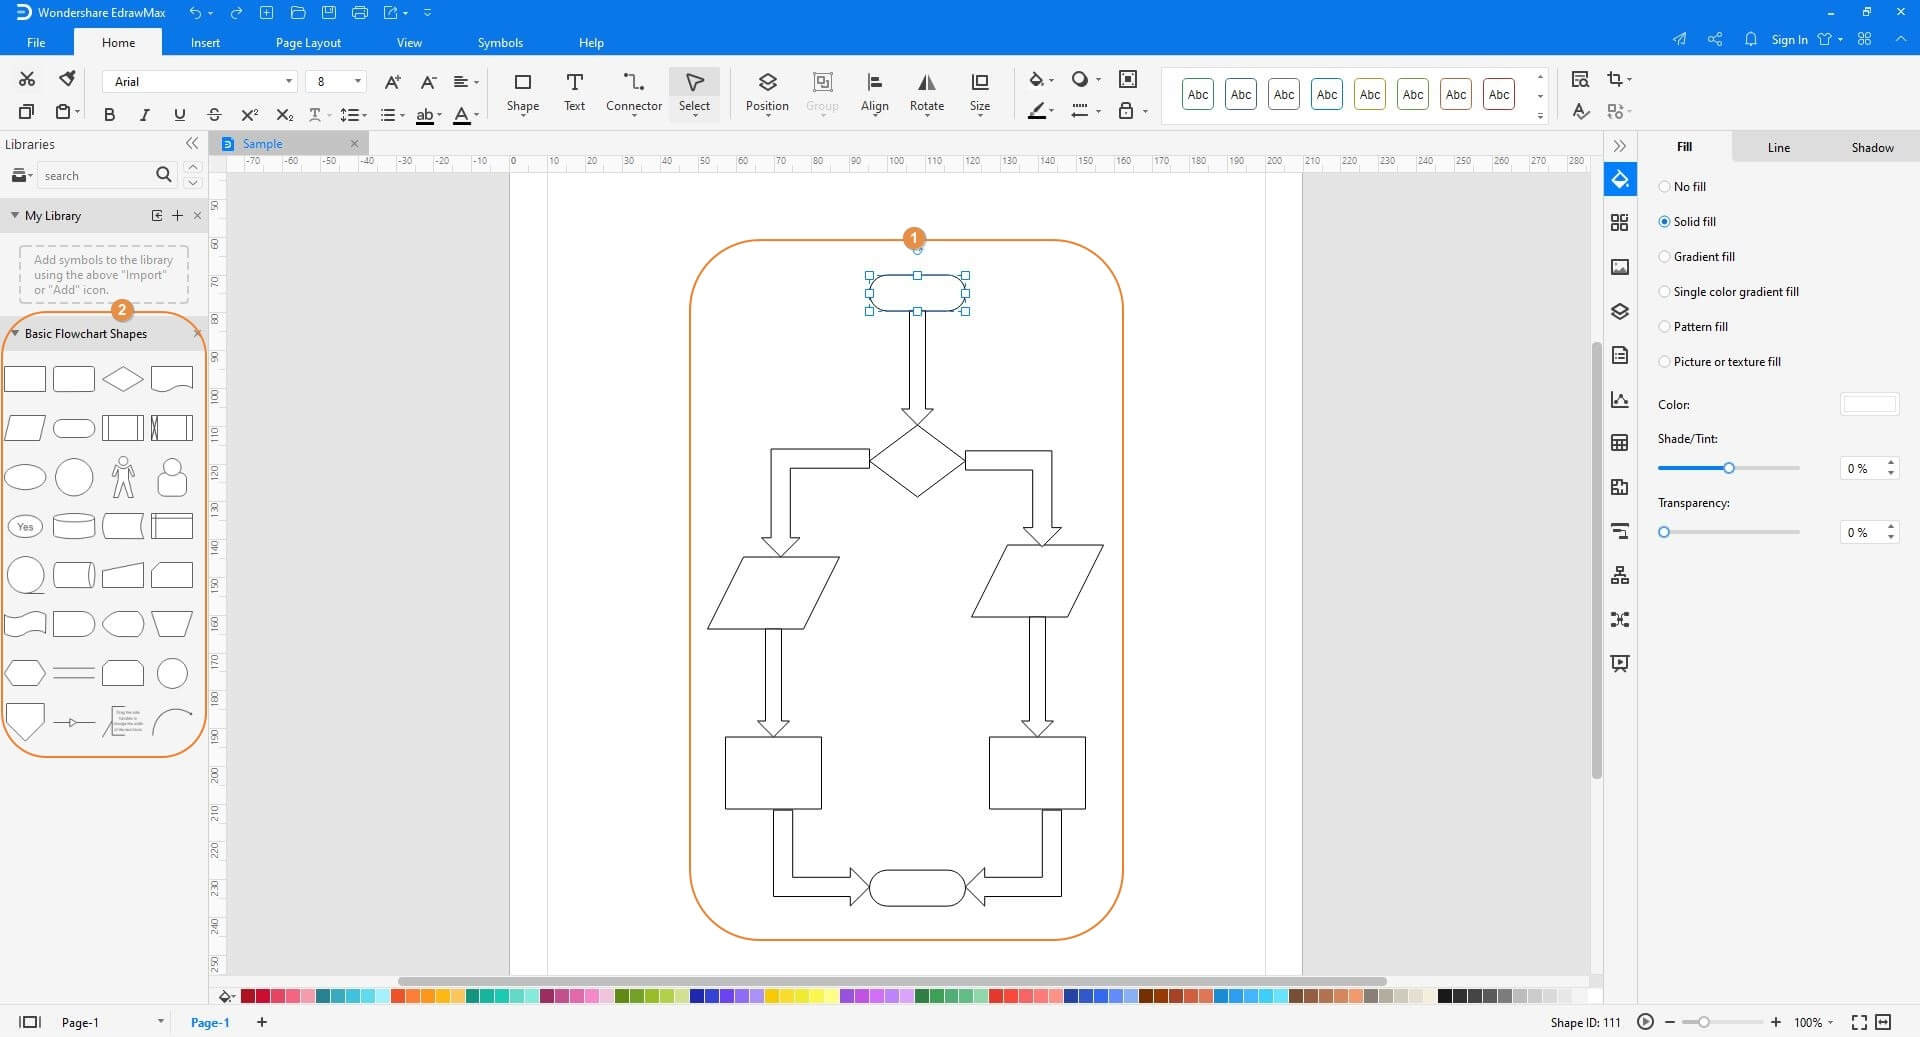 Add more shapes to the diagram in EdrawMax